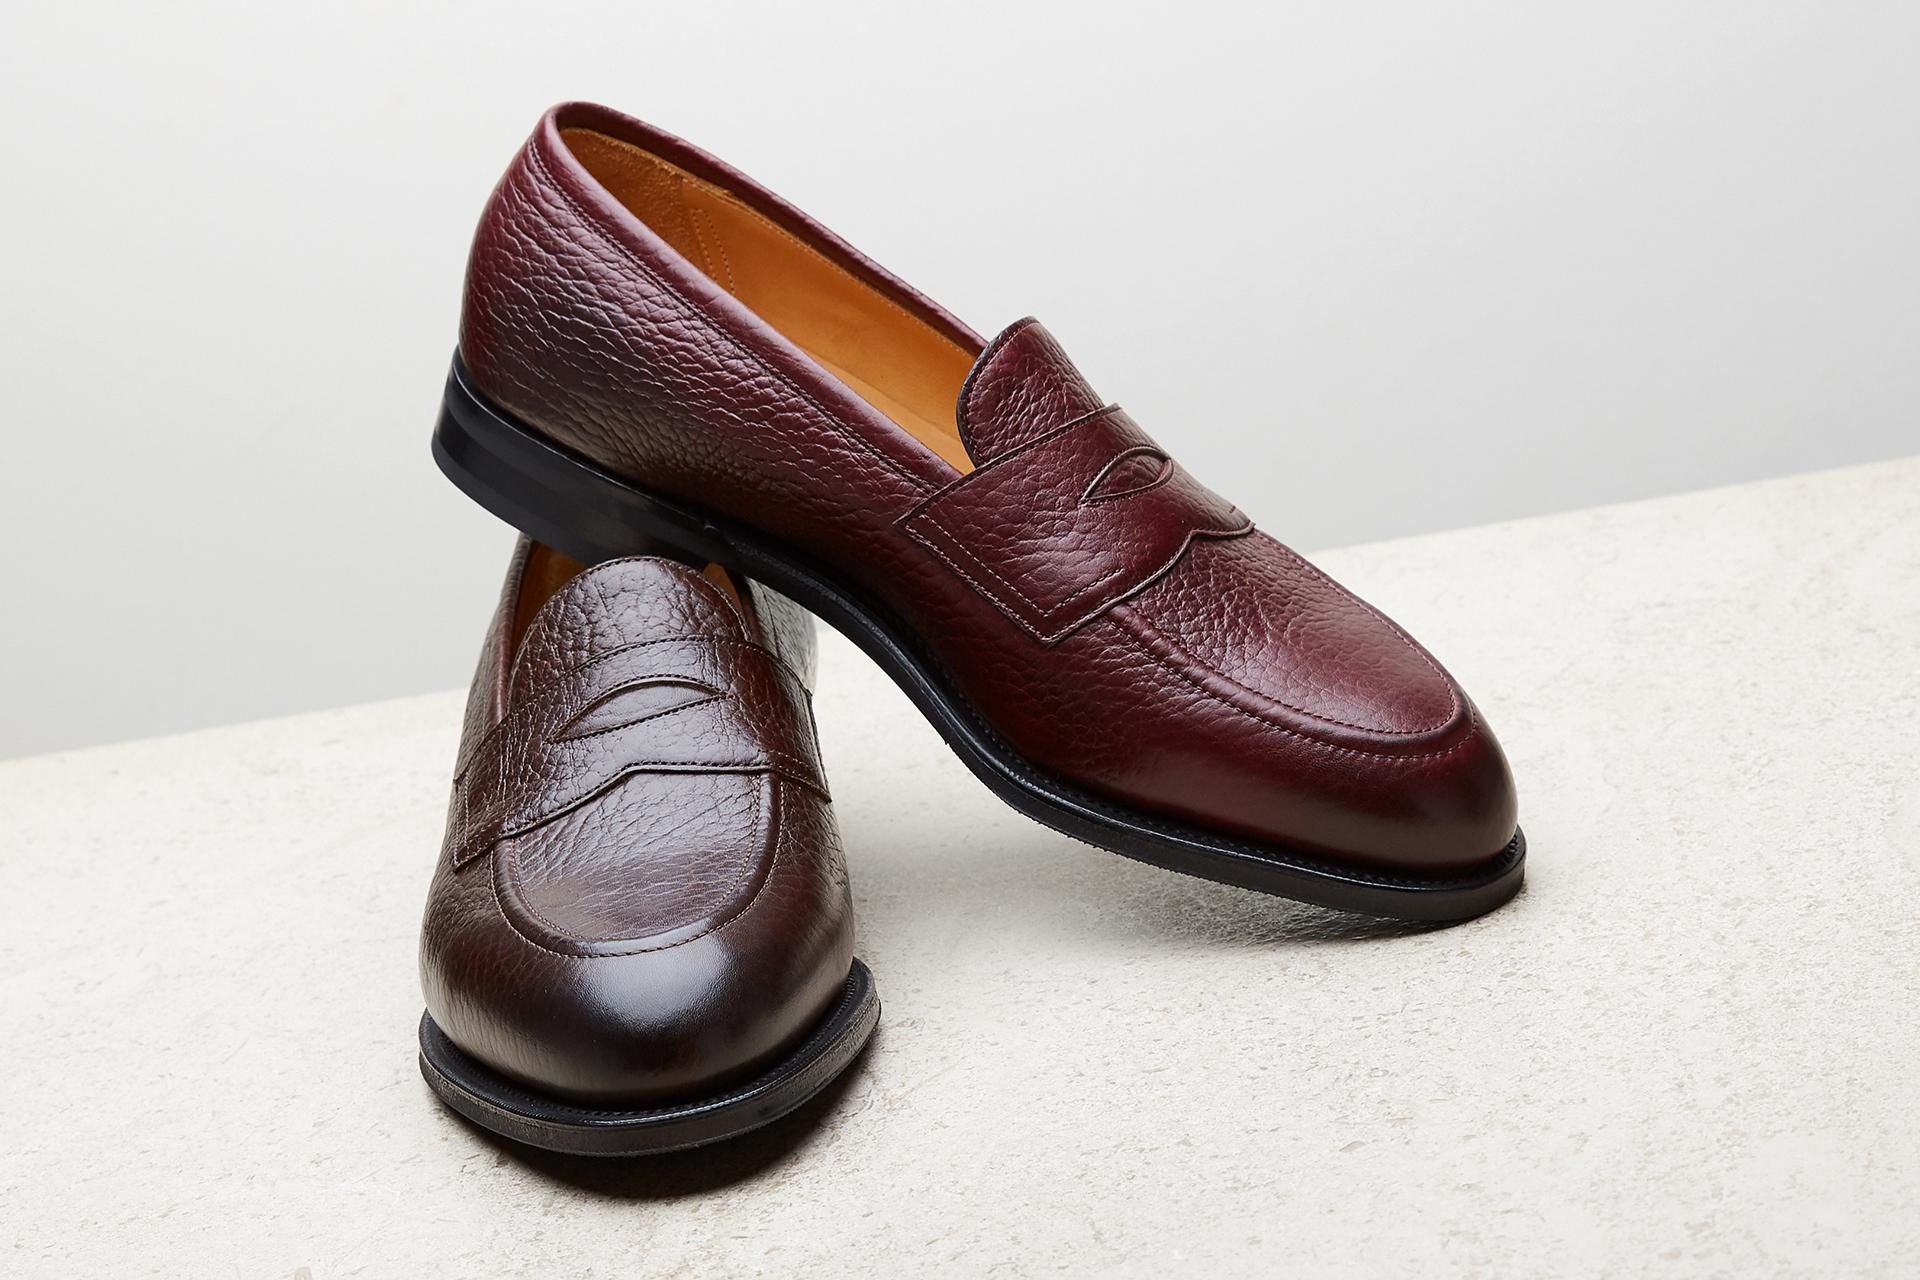 Edward Green Penny loafer